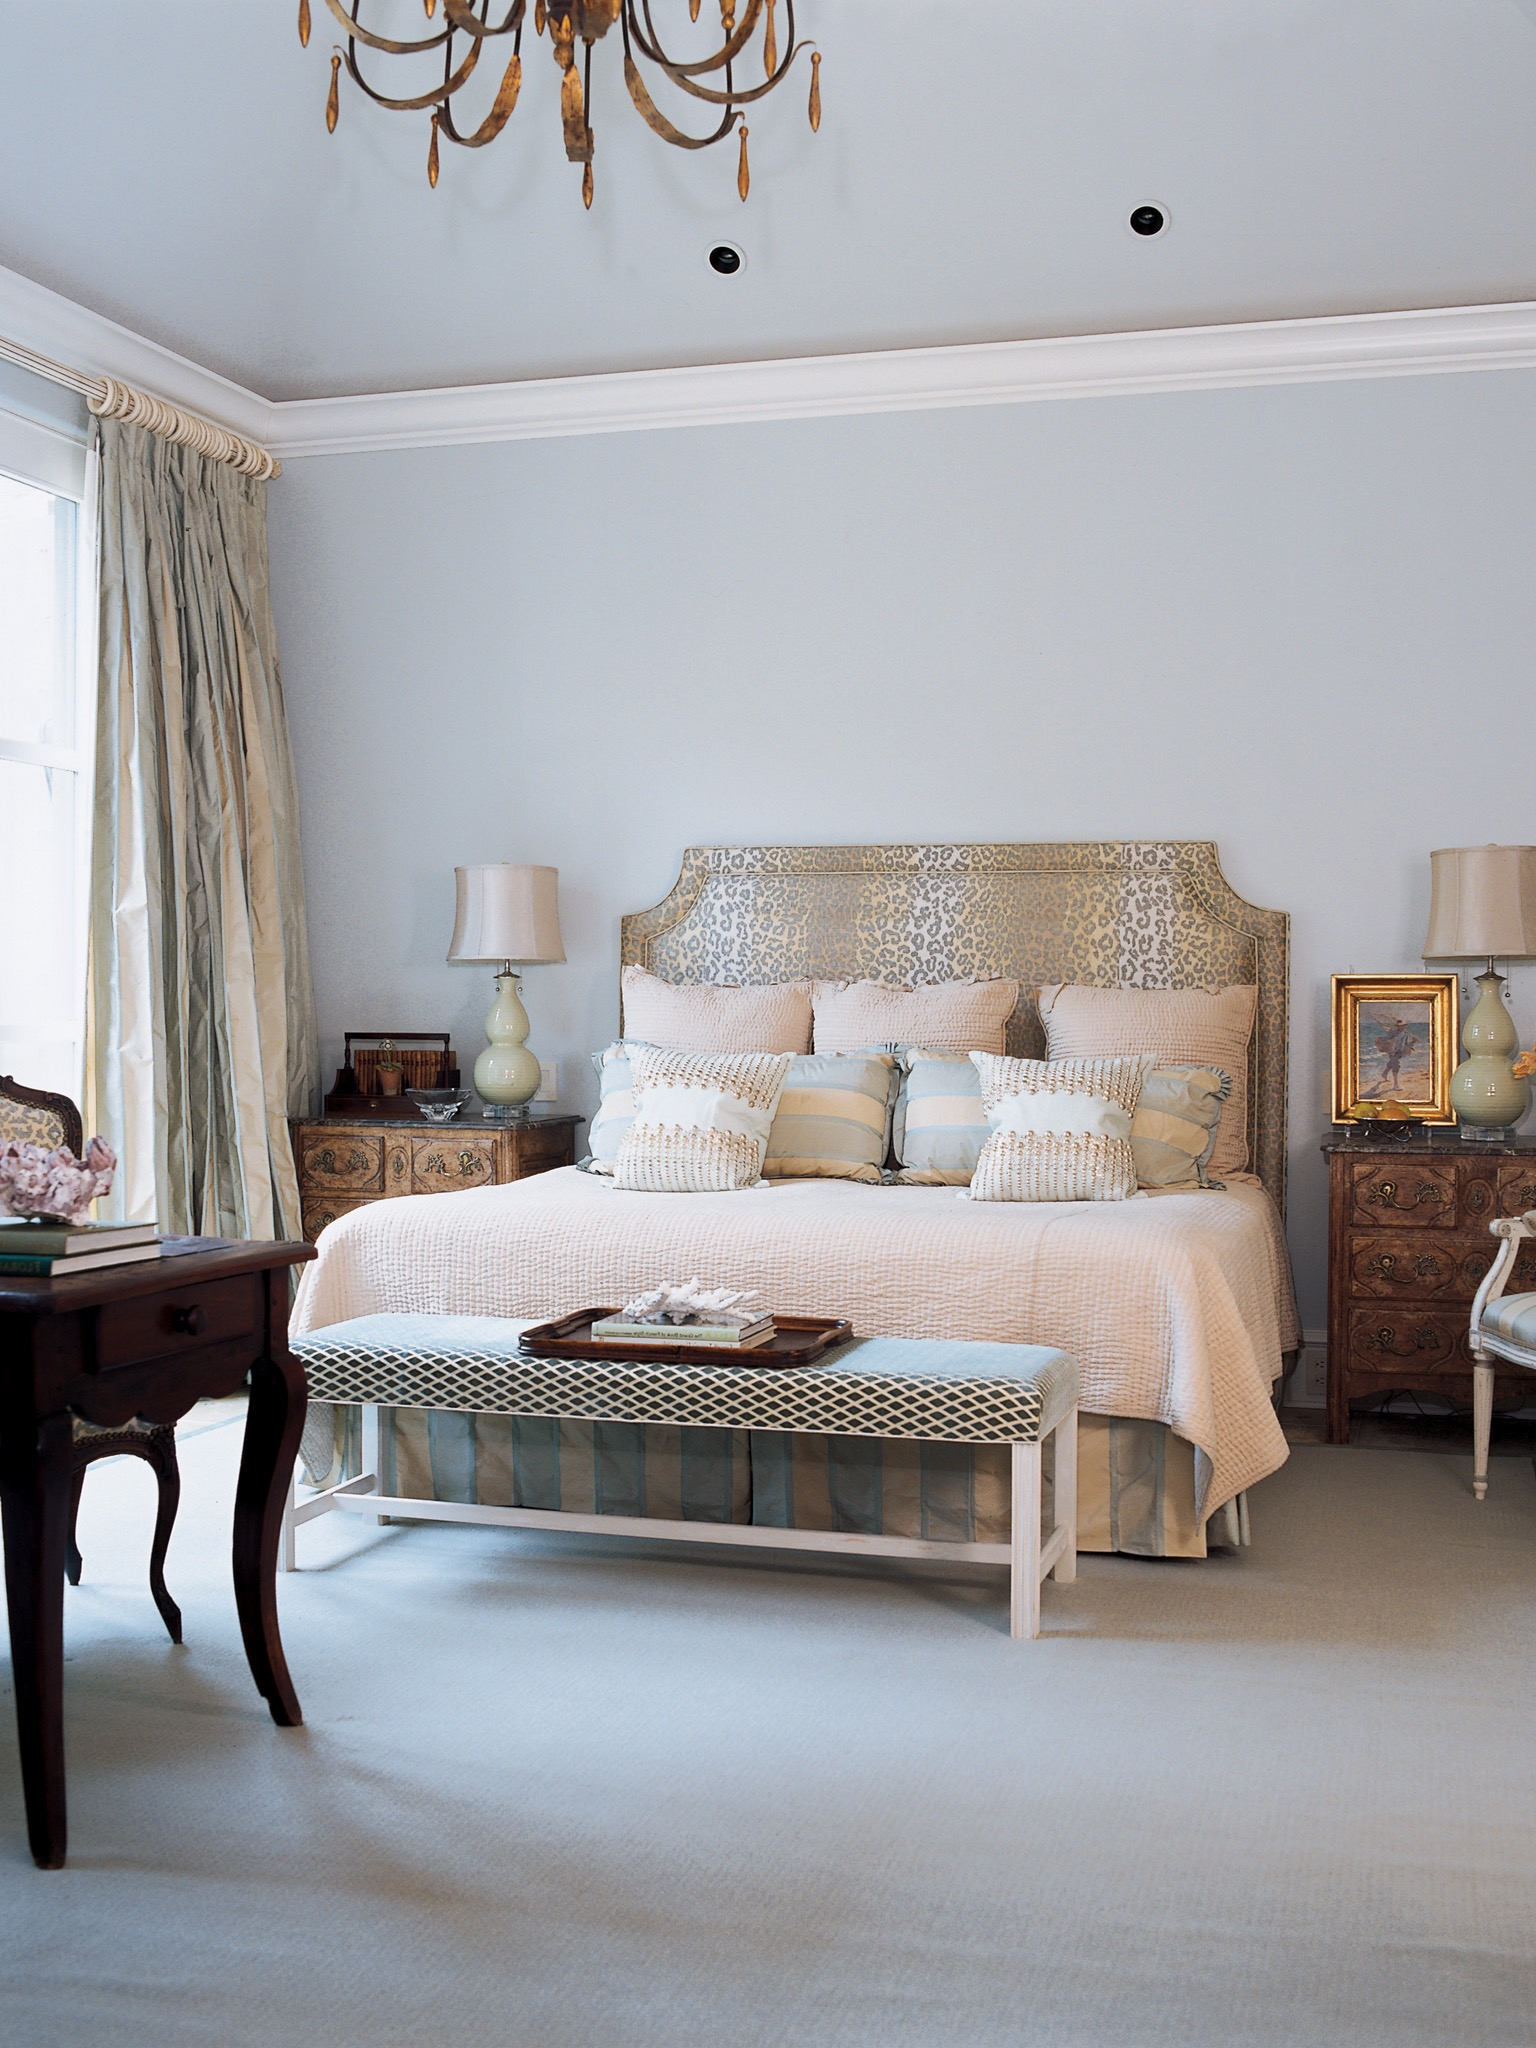 Victorian Bedroom With Patterned Window Treatment And Antique Blue Accent Table (Image 9 of 19)